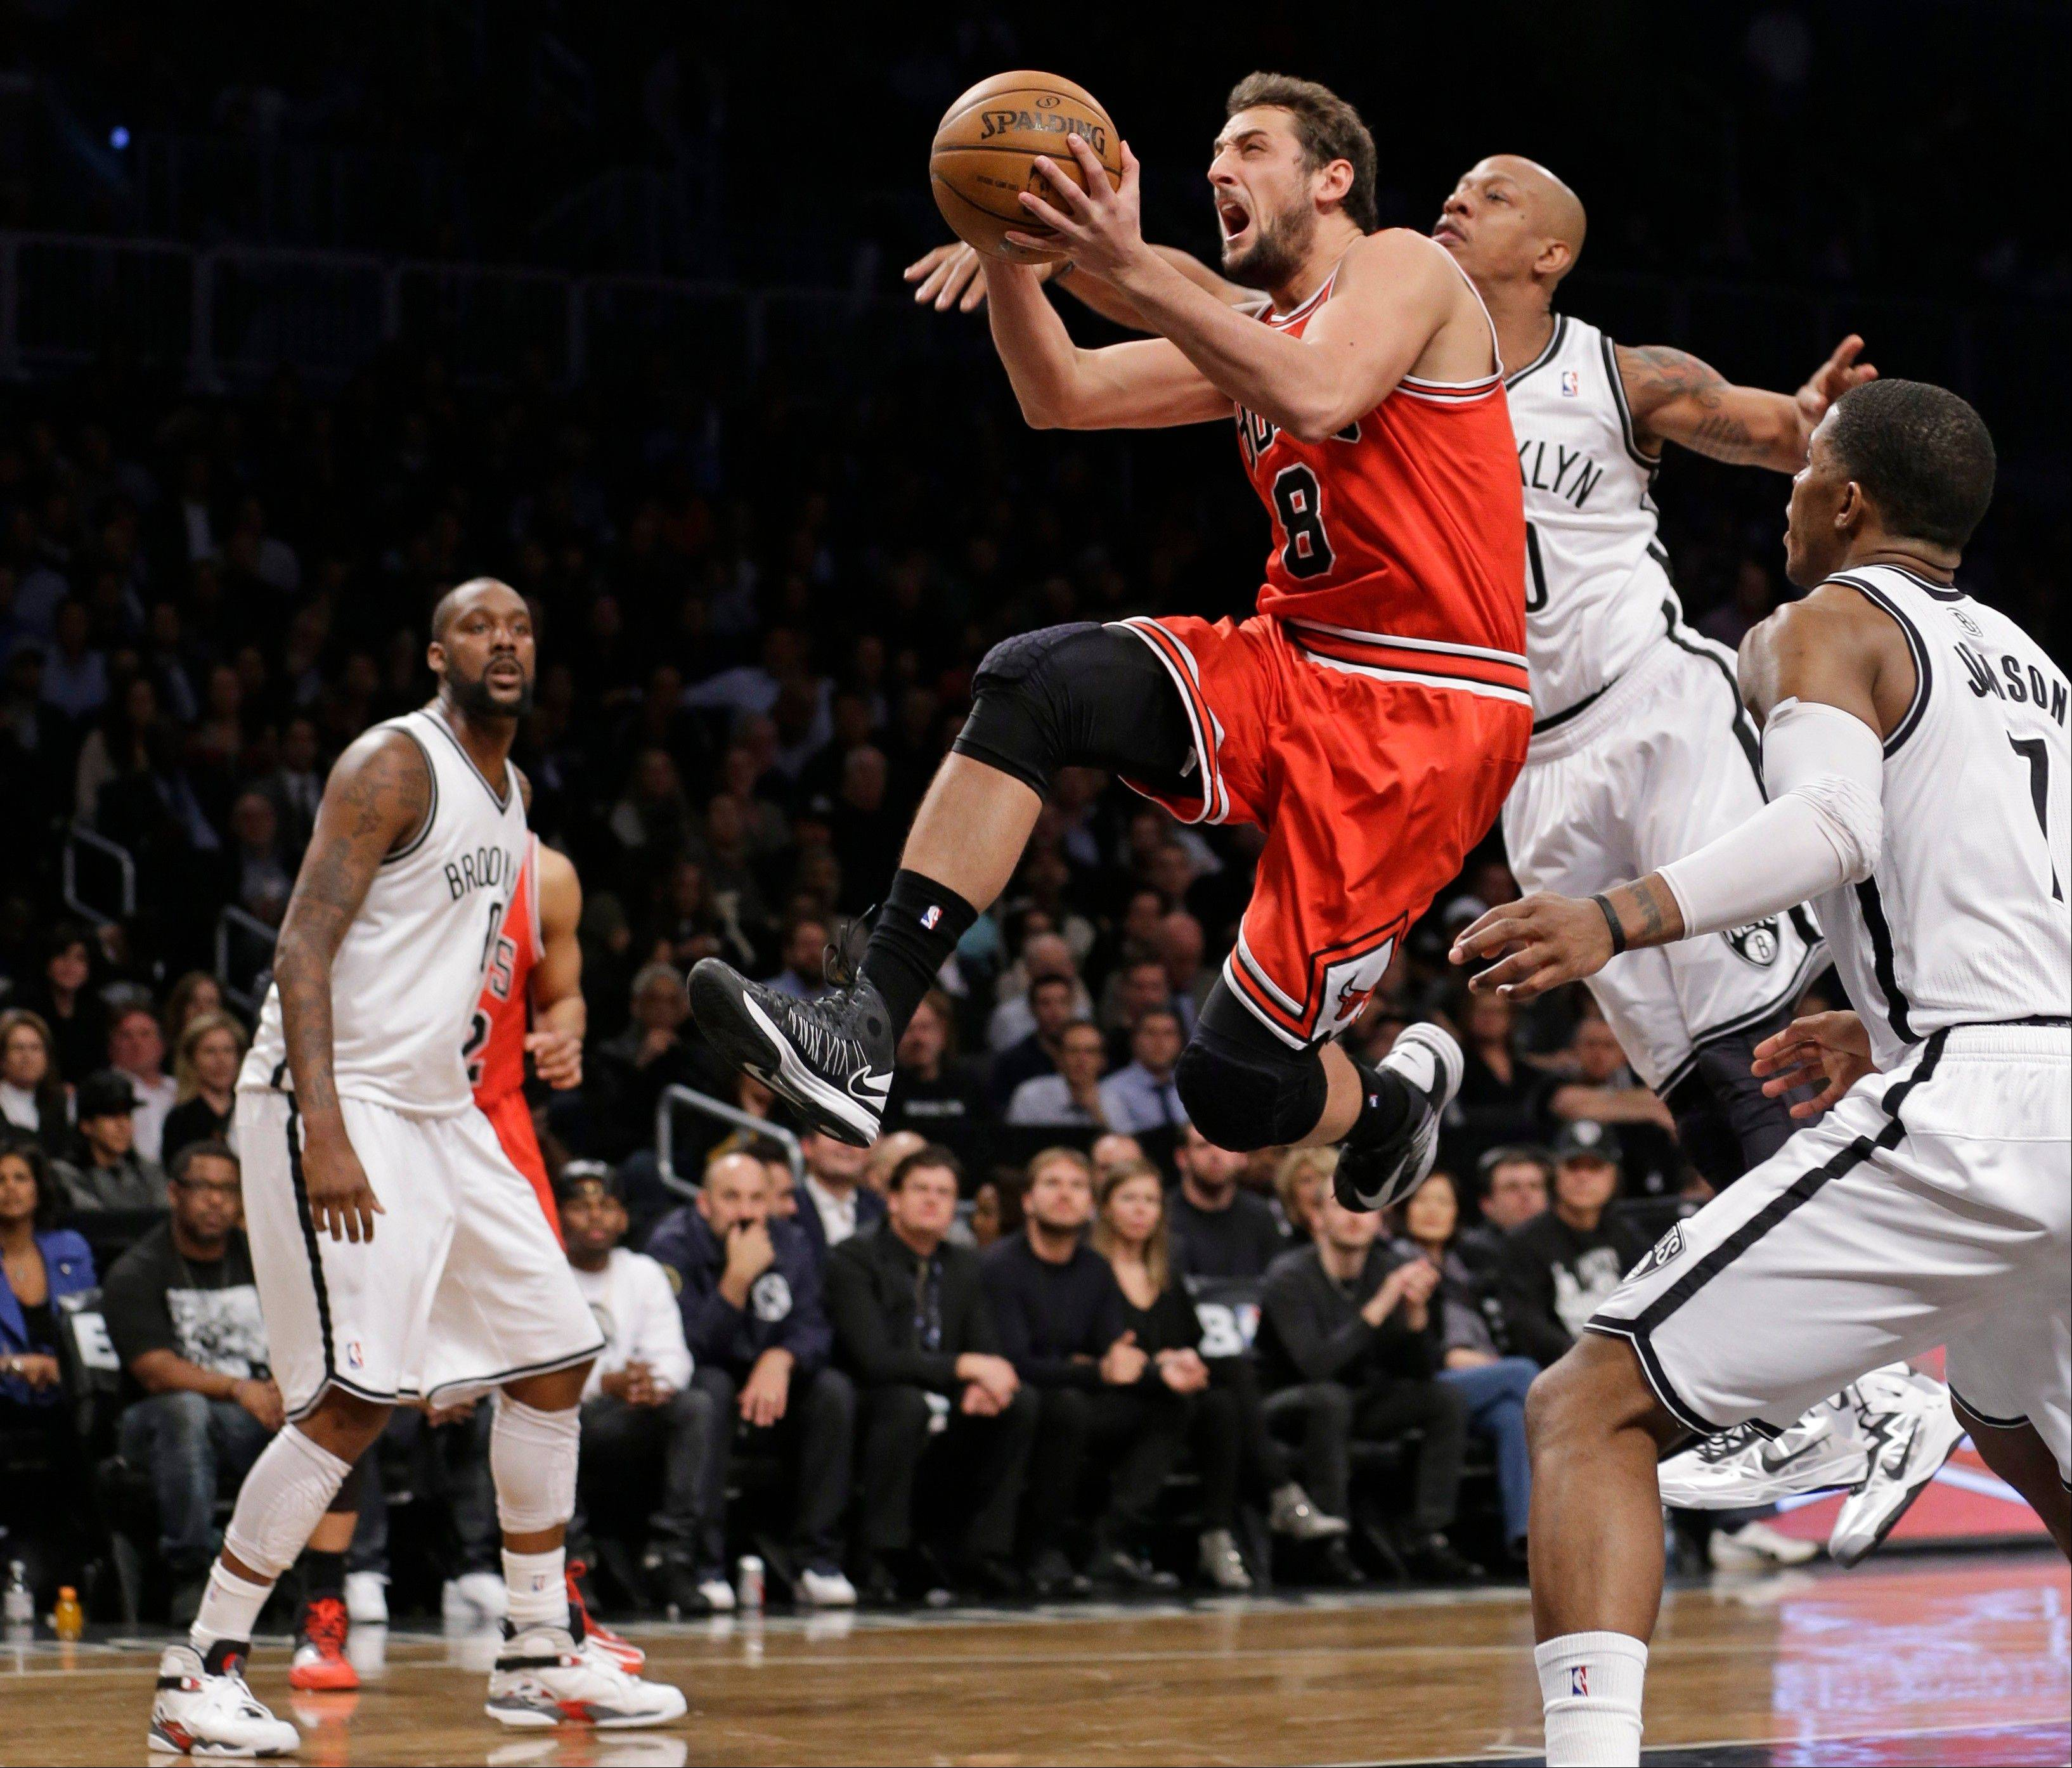 Bulls guard Marco Belinelli (8) goes up for a layup past Brooklyn Nets forward Andray Blatche, left, forward Keith Bogans (10) and guard Joe Johnson (7) in the second half of Game 2 of their first-round NBA basketball playoff series, Monday, April 22, 2013, in New York. The Bulls won 90-82.